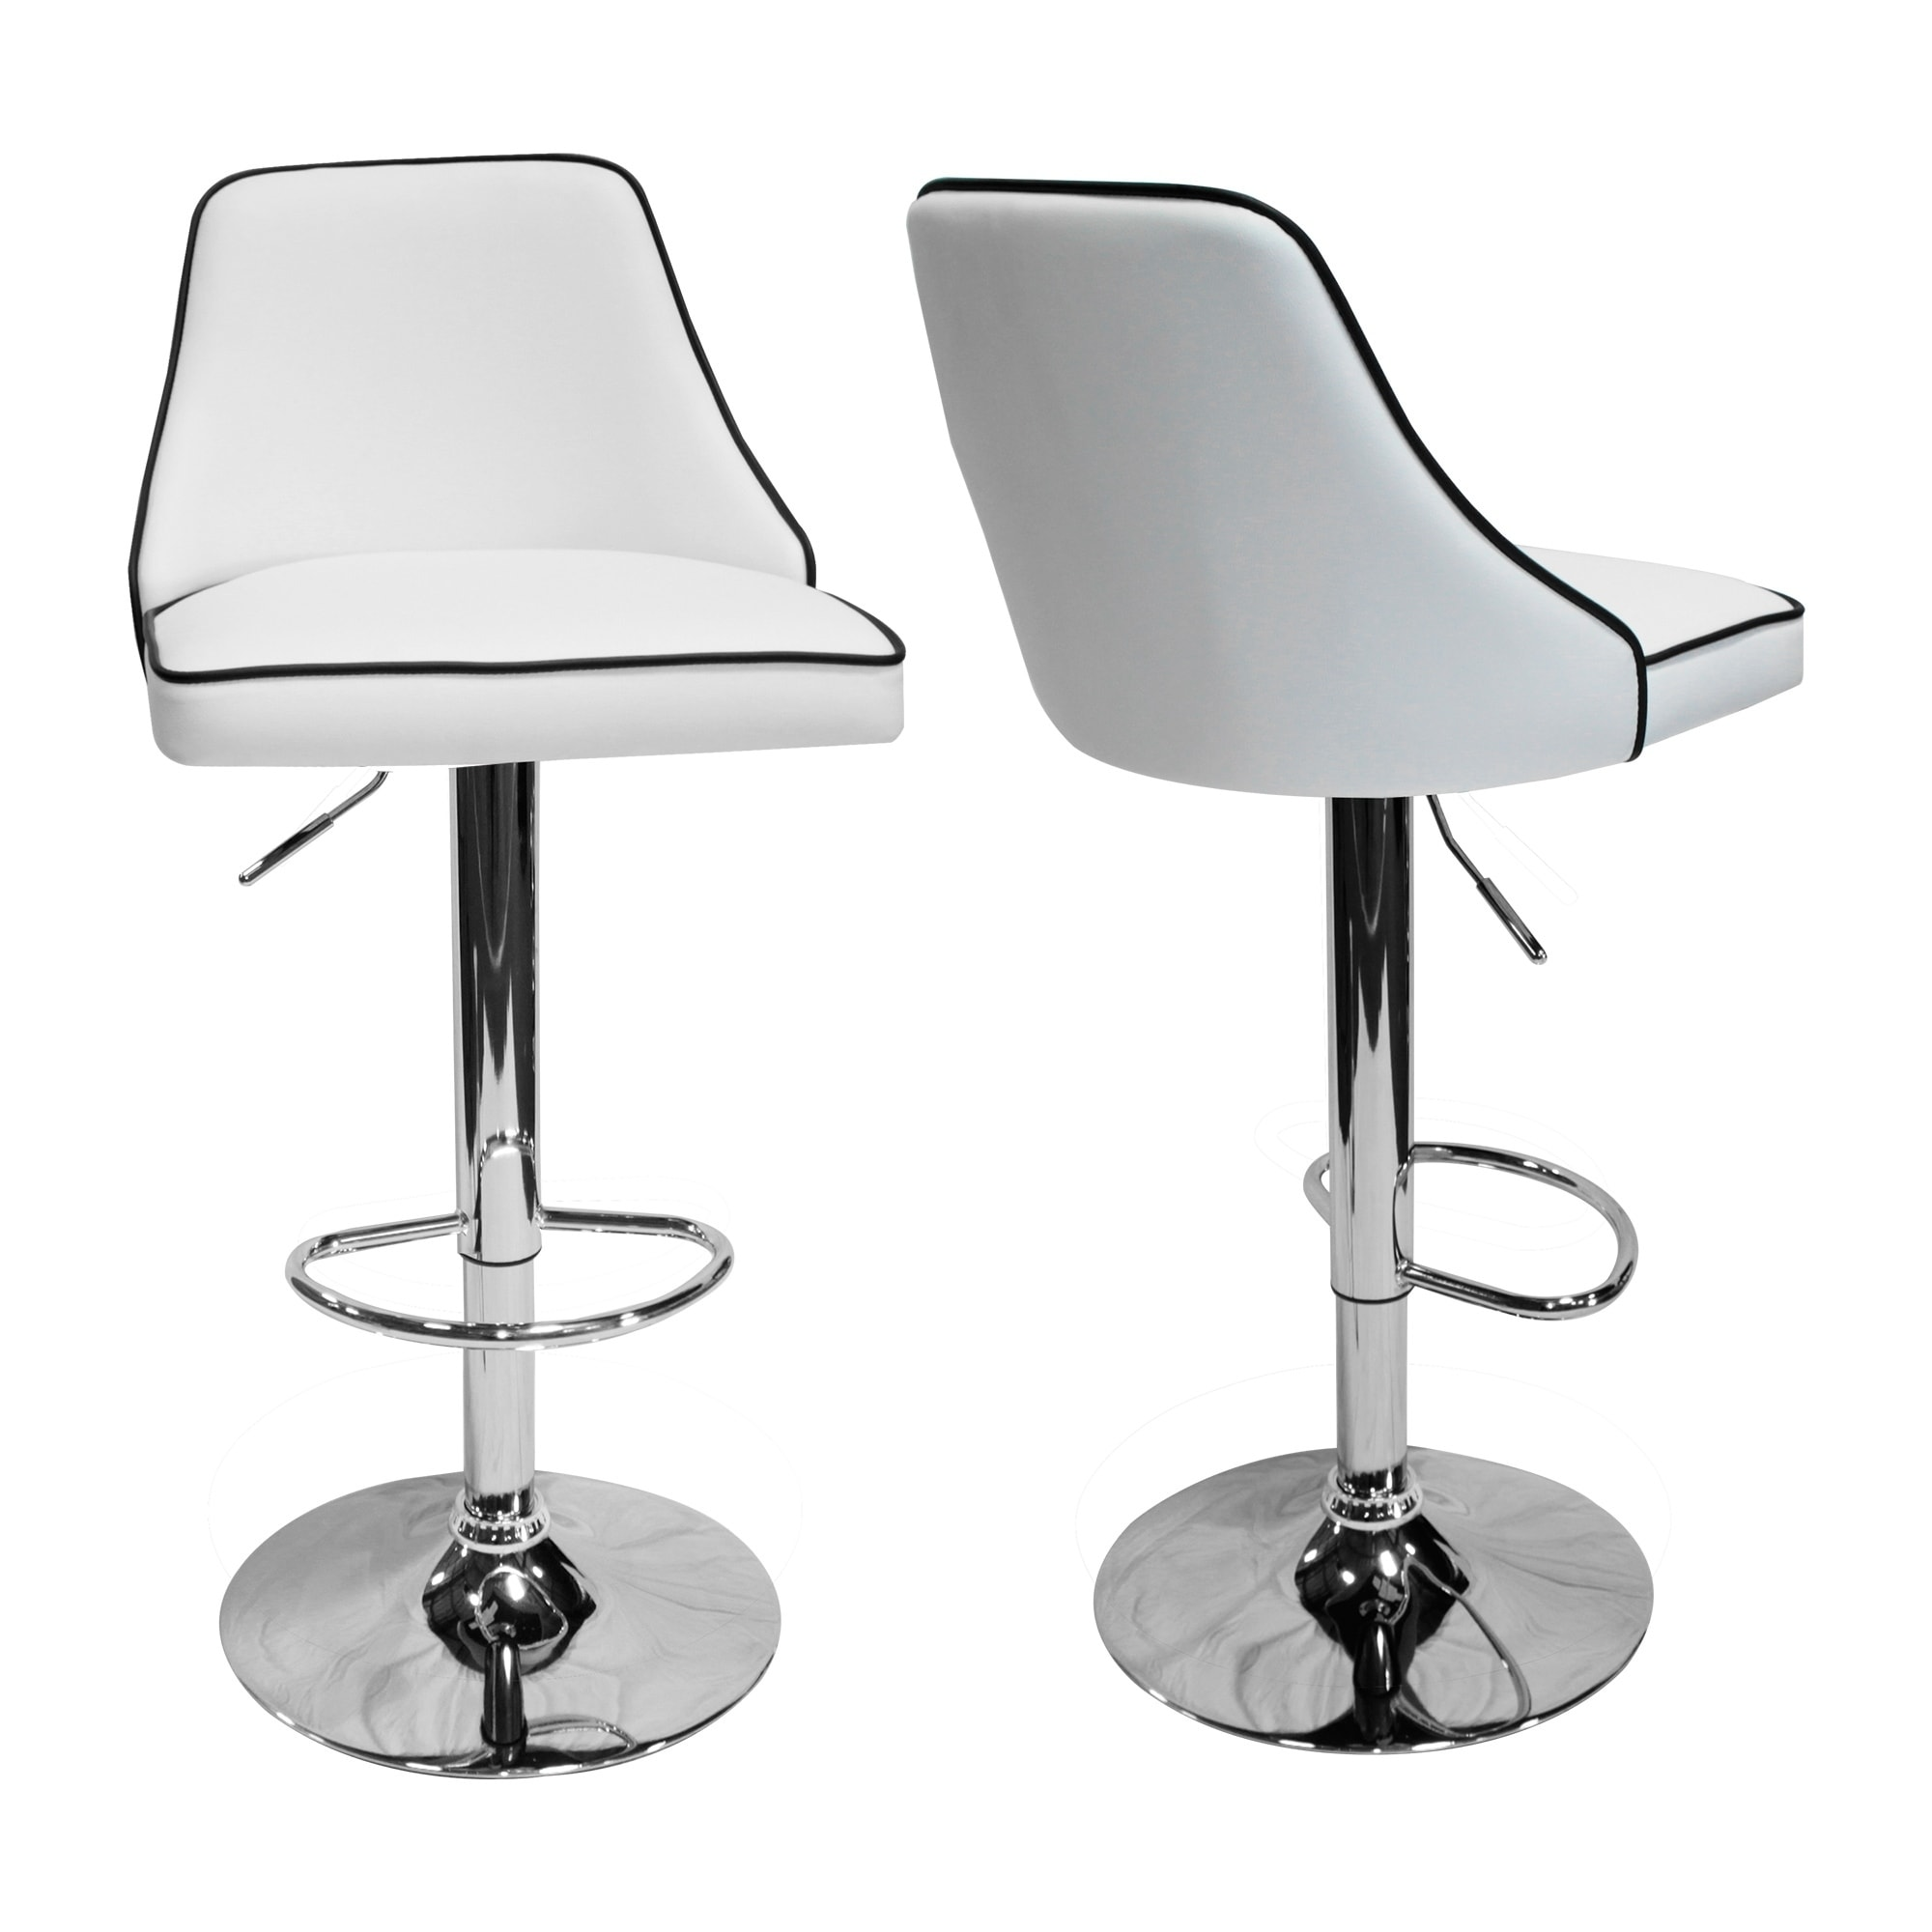 Best Master Furniture HY6332 Adjustable Swivel Bar Stools (Set Of 2)   Free  Shipping Today   Overstock   25935331